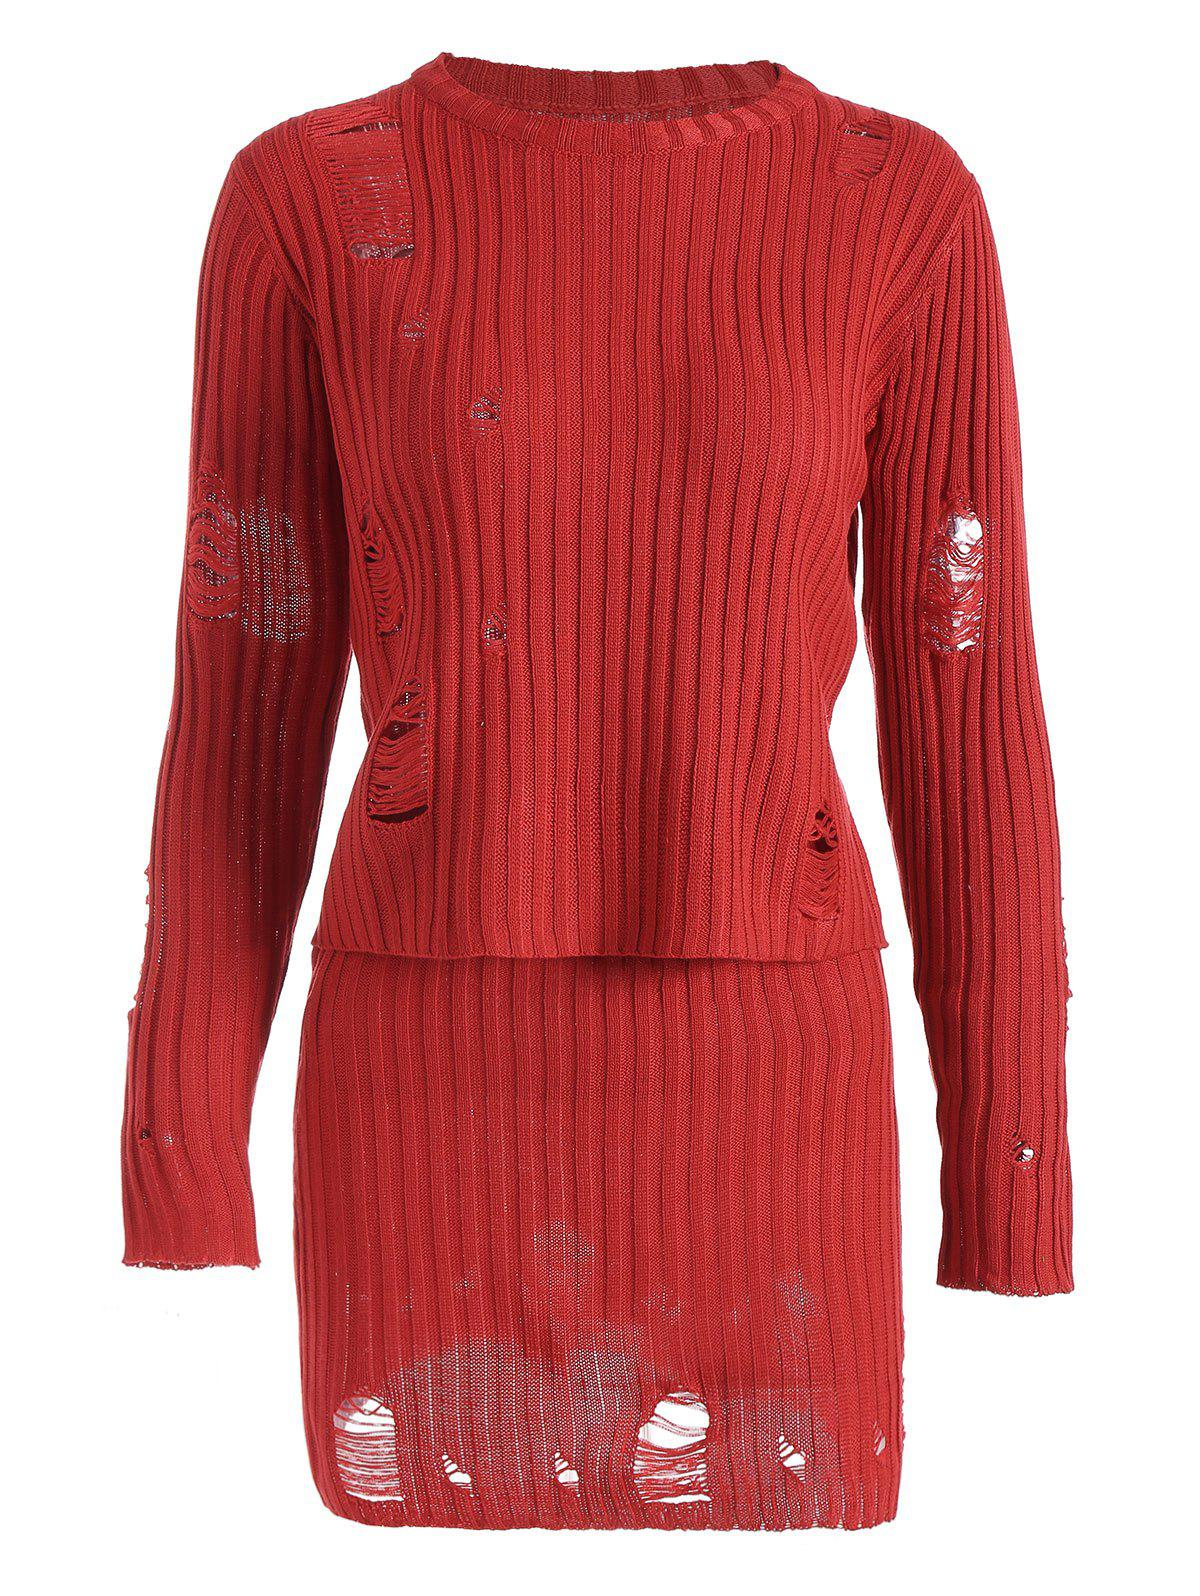 Ripped Ribbed Knitwear with Knit Pencil Skirt - RED S